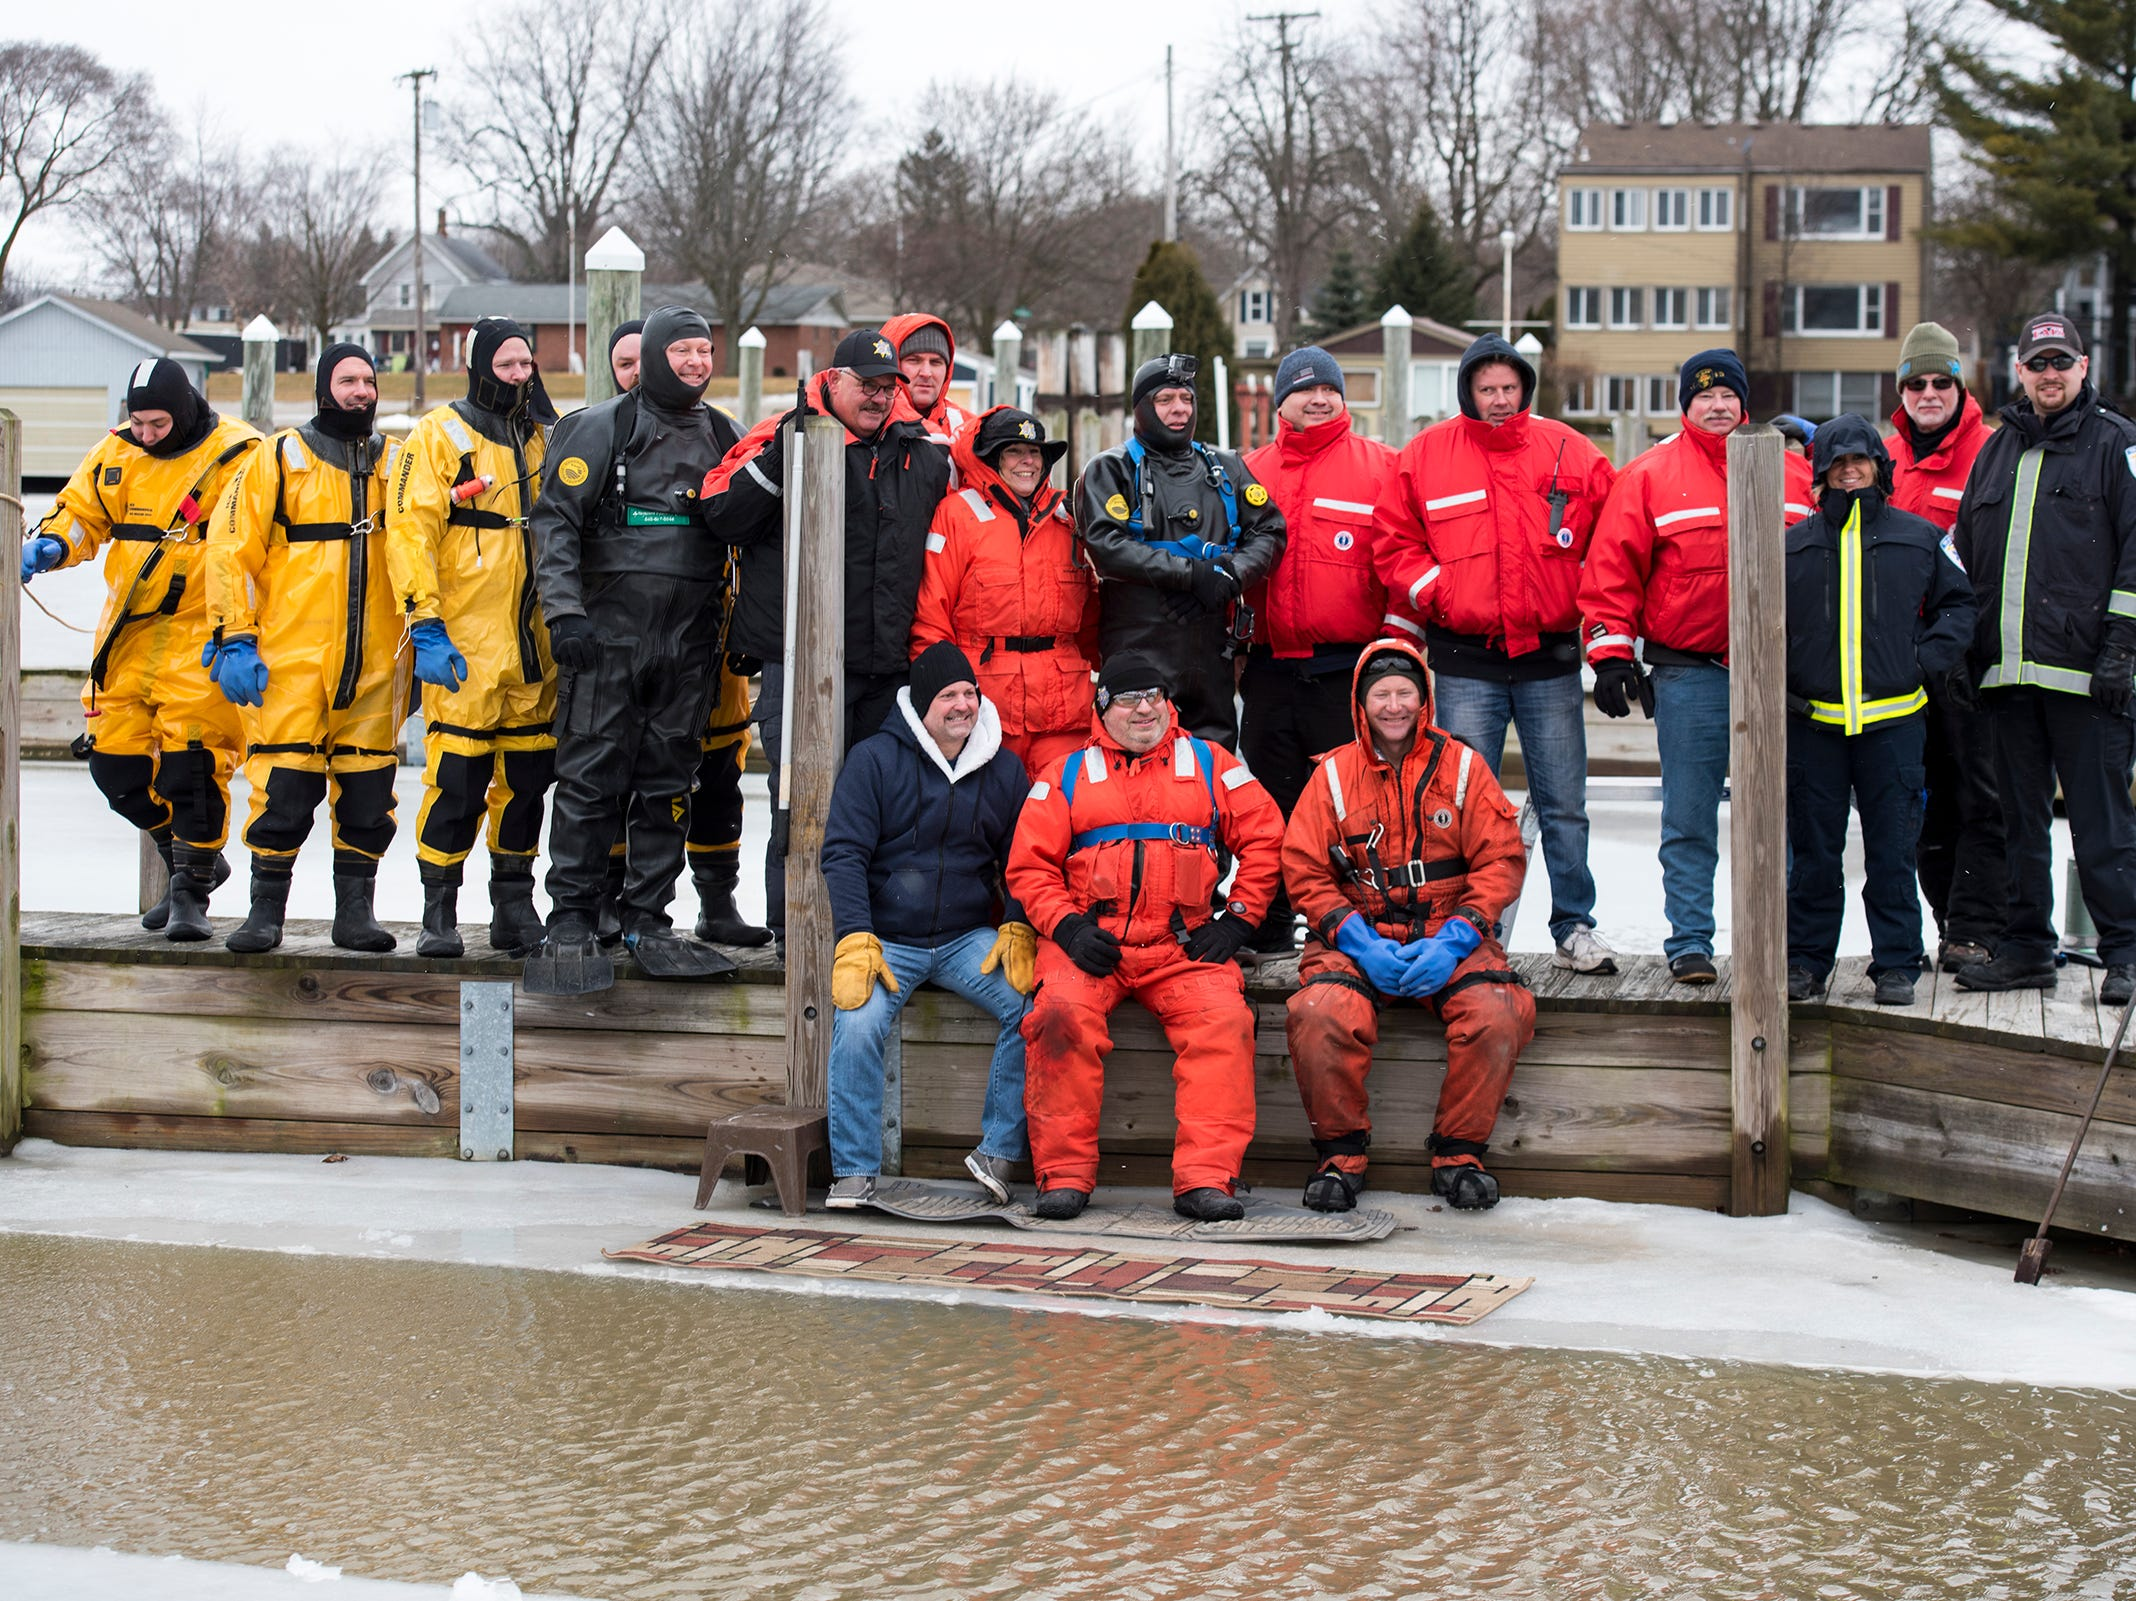 First responders on the scene of the annual St. Clair Polar Plunge gather for a group photo before the event Sunday, Feb. 24, 2019.